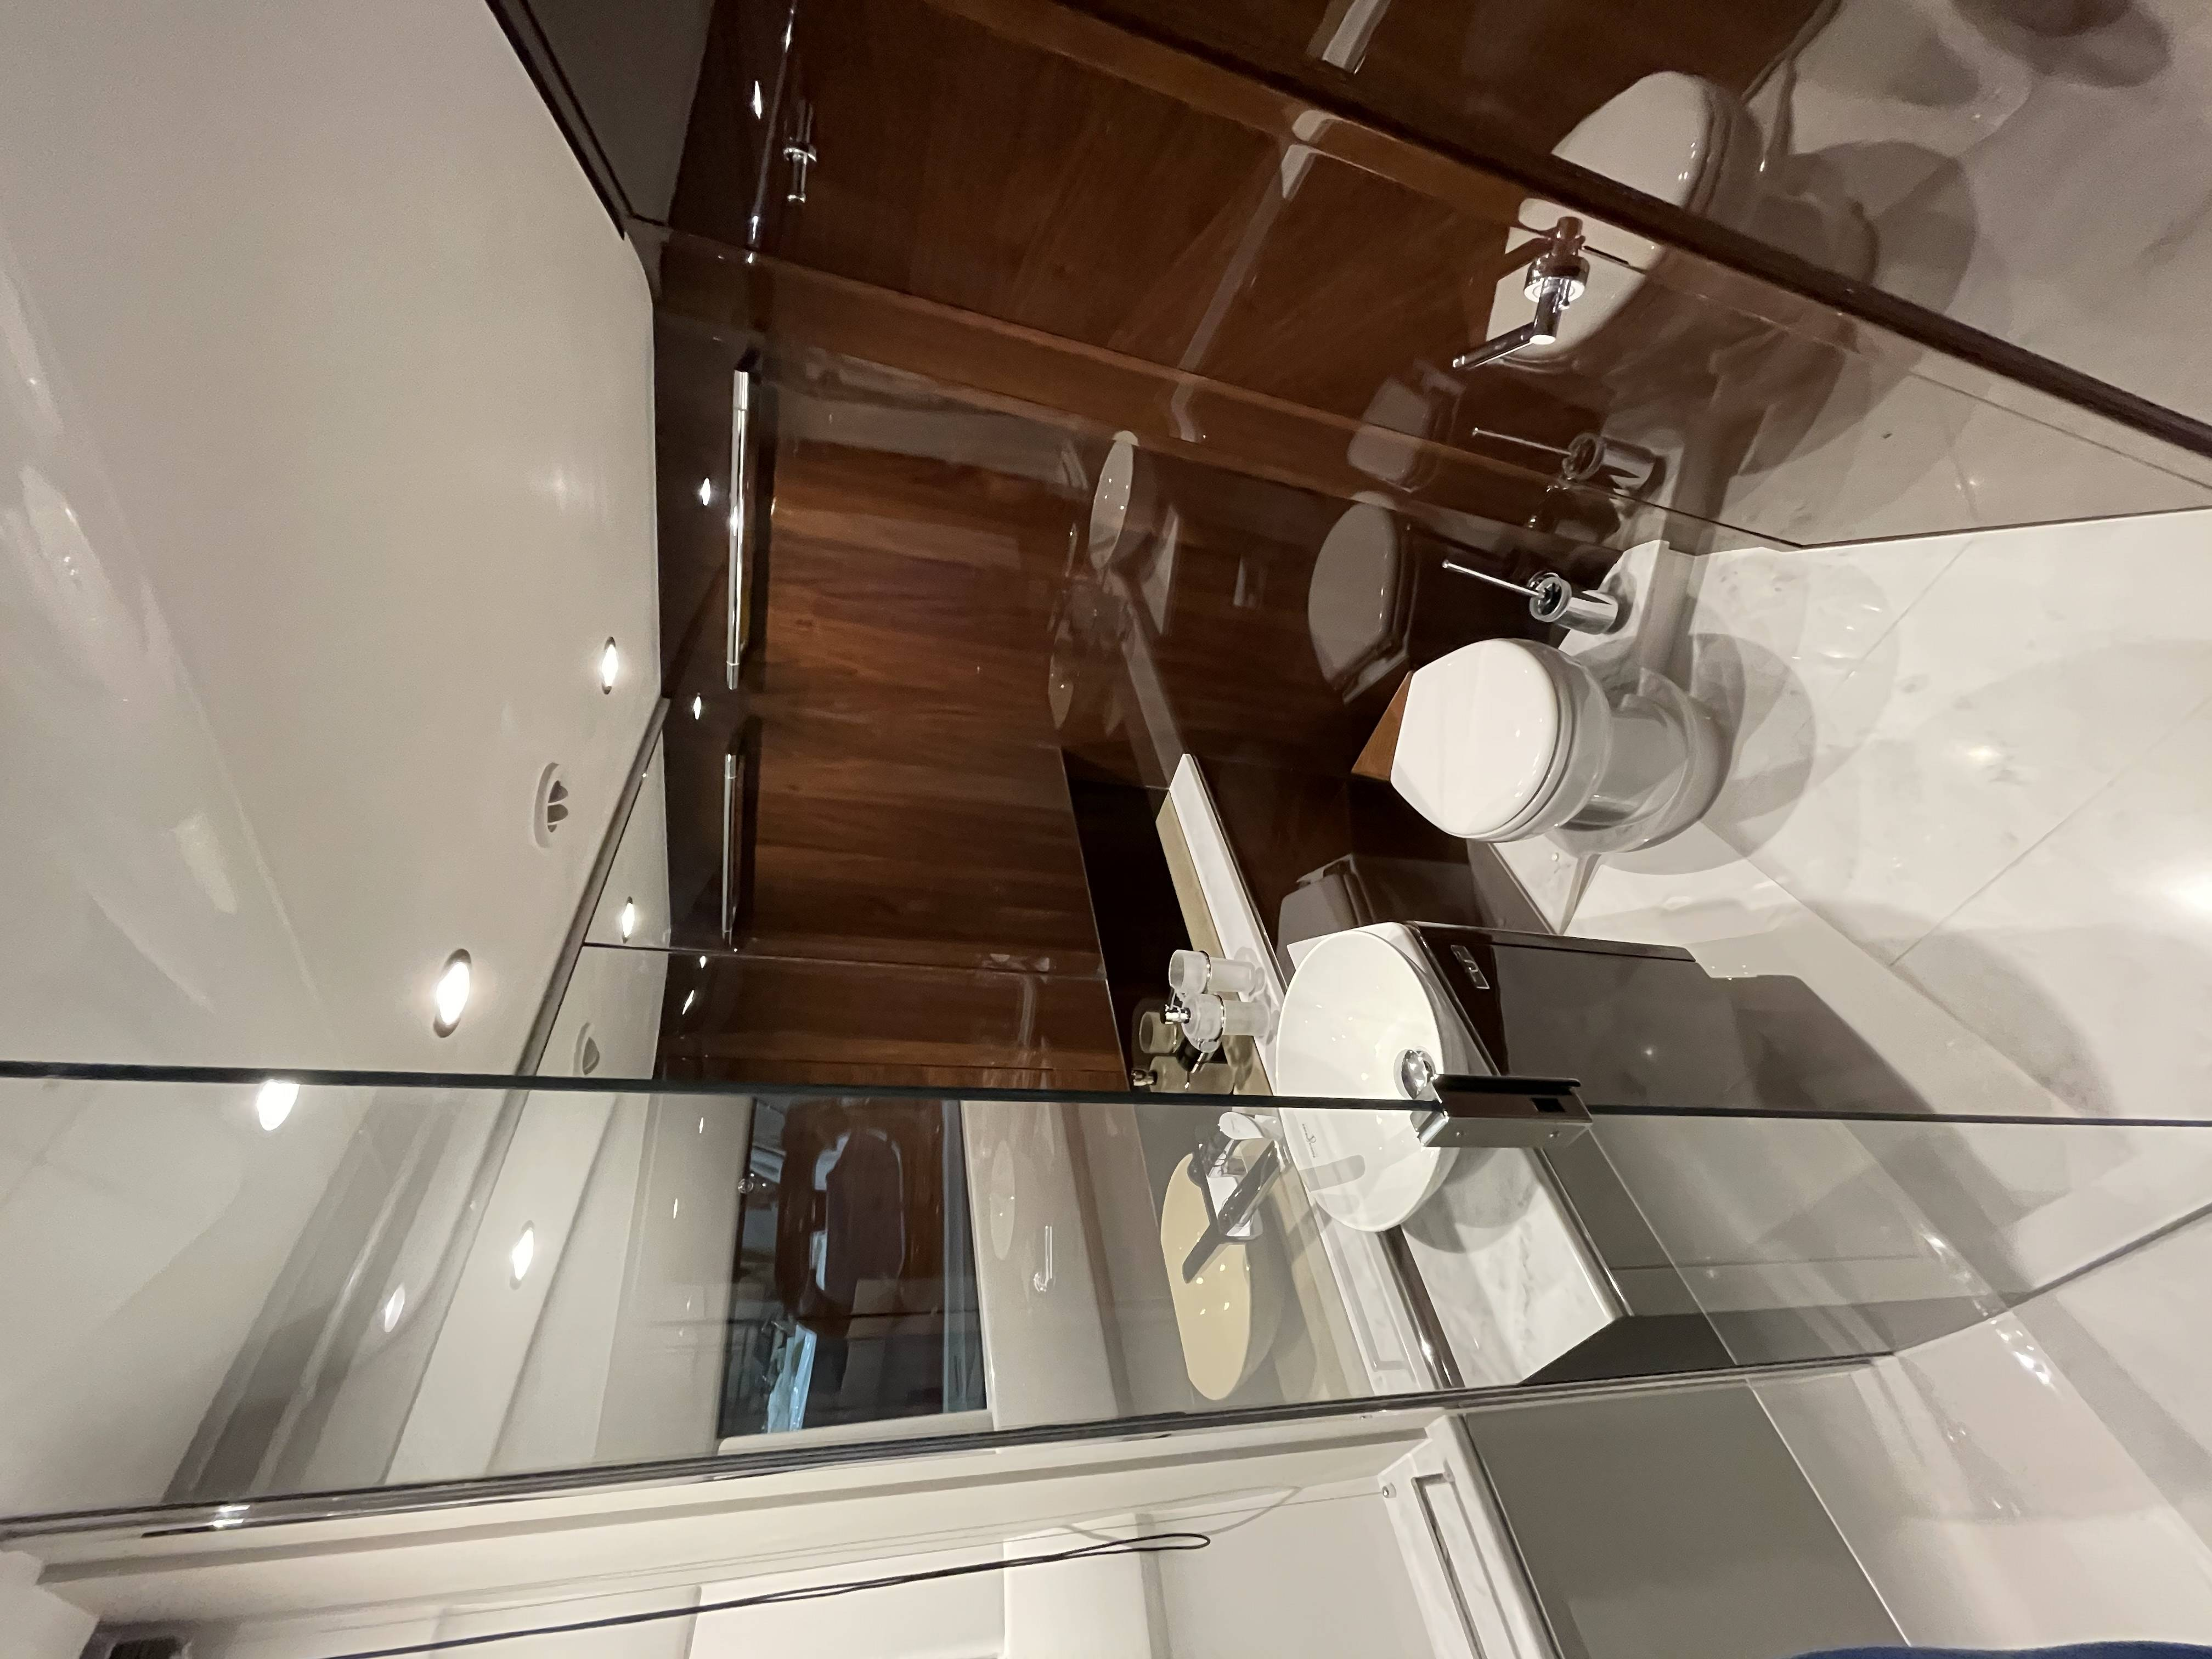 2021 Princess Yachts boat for sale, model of the boat is V50 & Image # 28 of 29